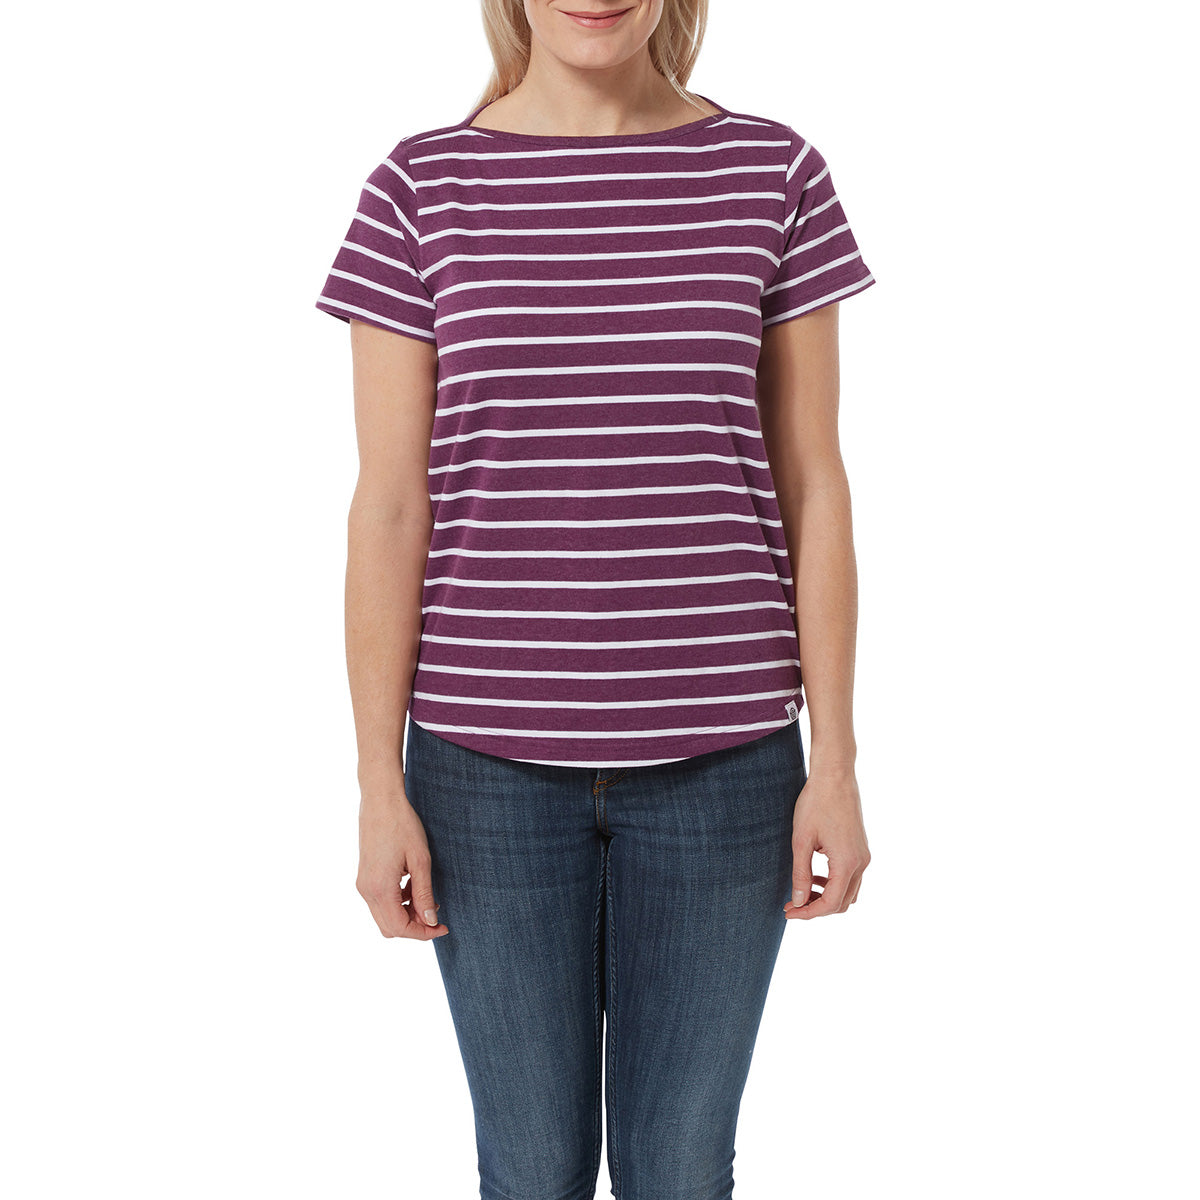 Carson Womens T-Shirt - Mulberry Marl Stripe